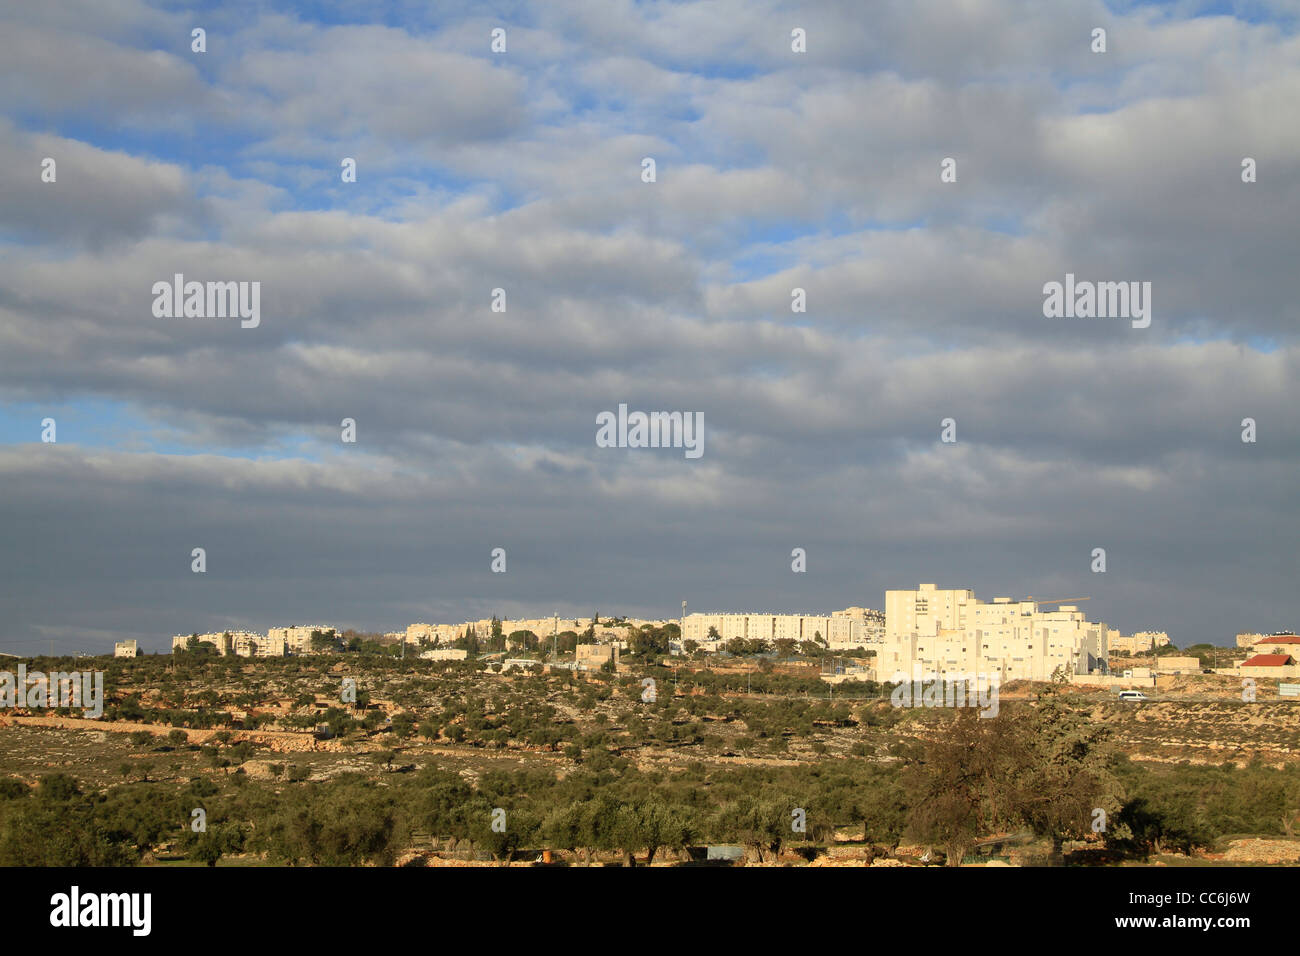 Israel, Jerusalem, a view of Gilo neighbourhood - Stock Image